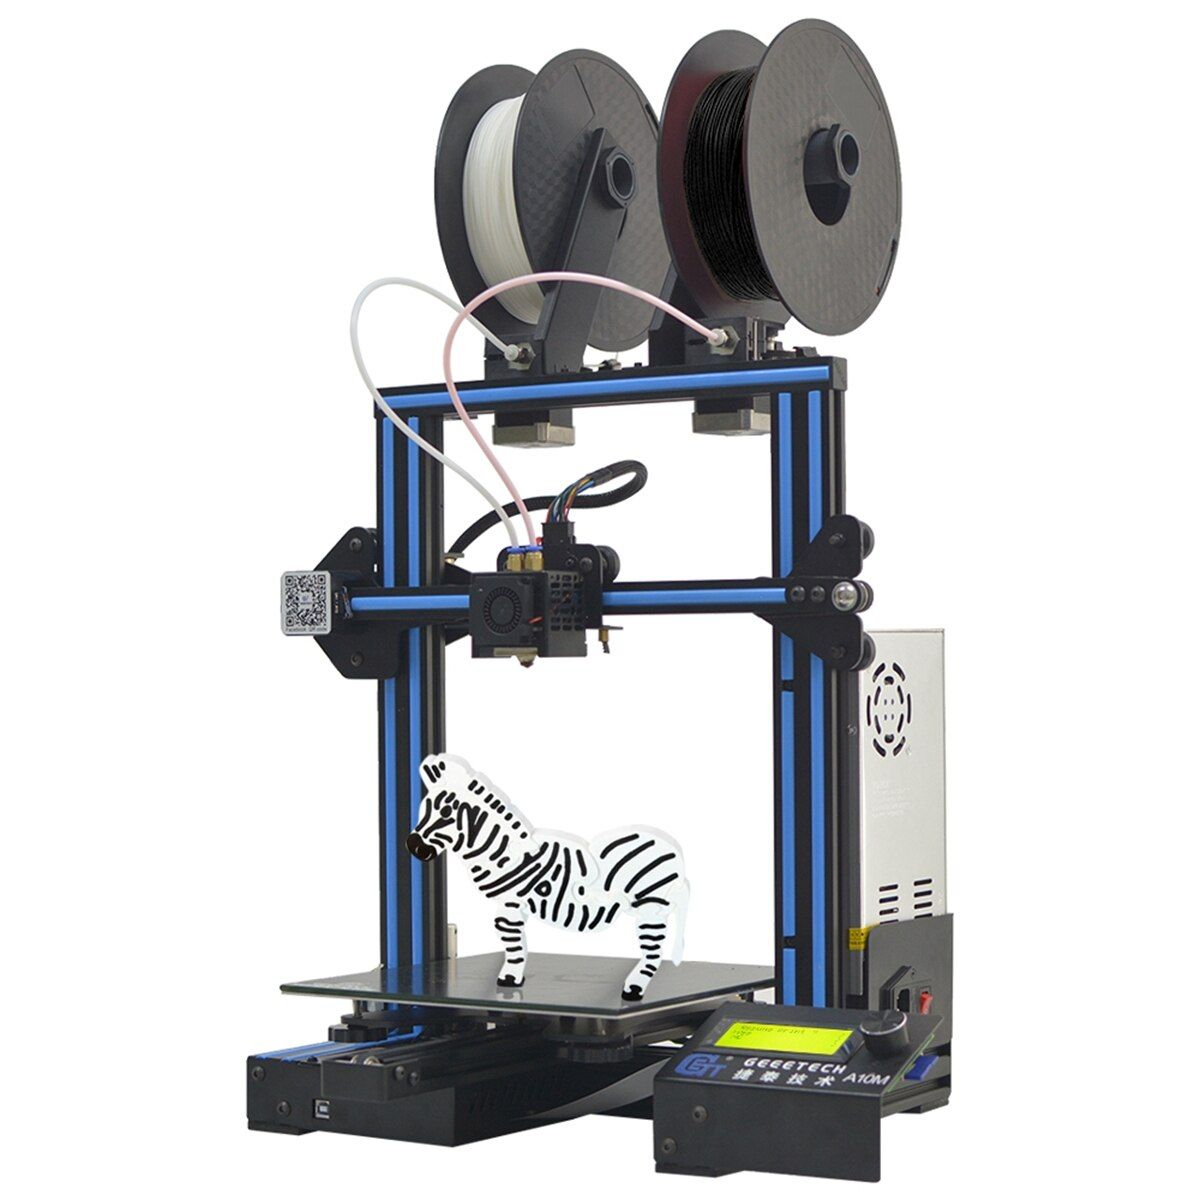 NEW A10M Mix-color I3 3D Printer Printing Size With Dual Extruder/Filament Detector/Power Resume/3:1 Gear Train Control Board